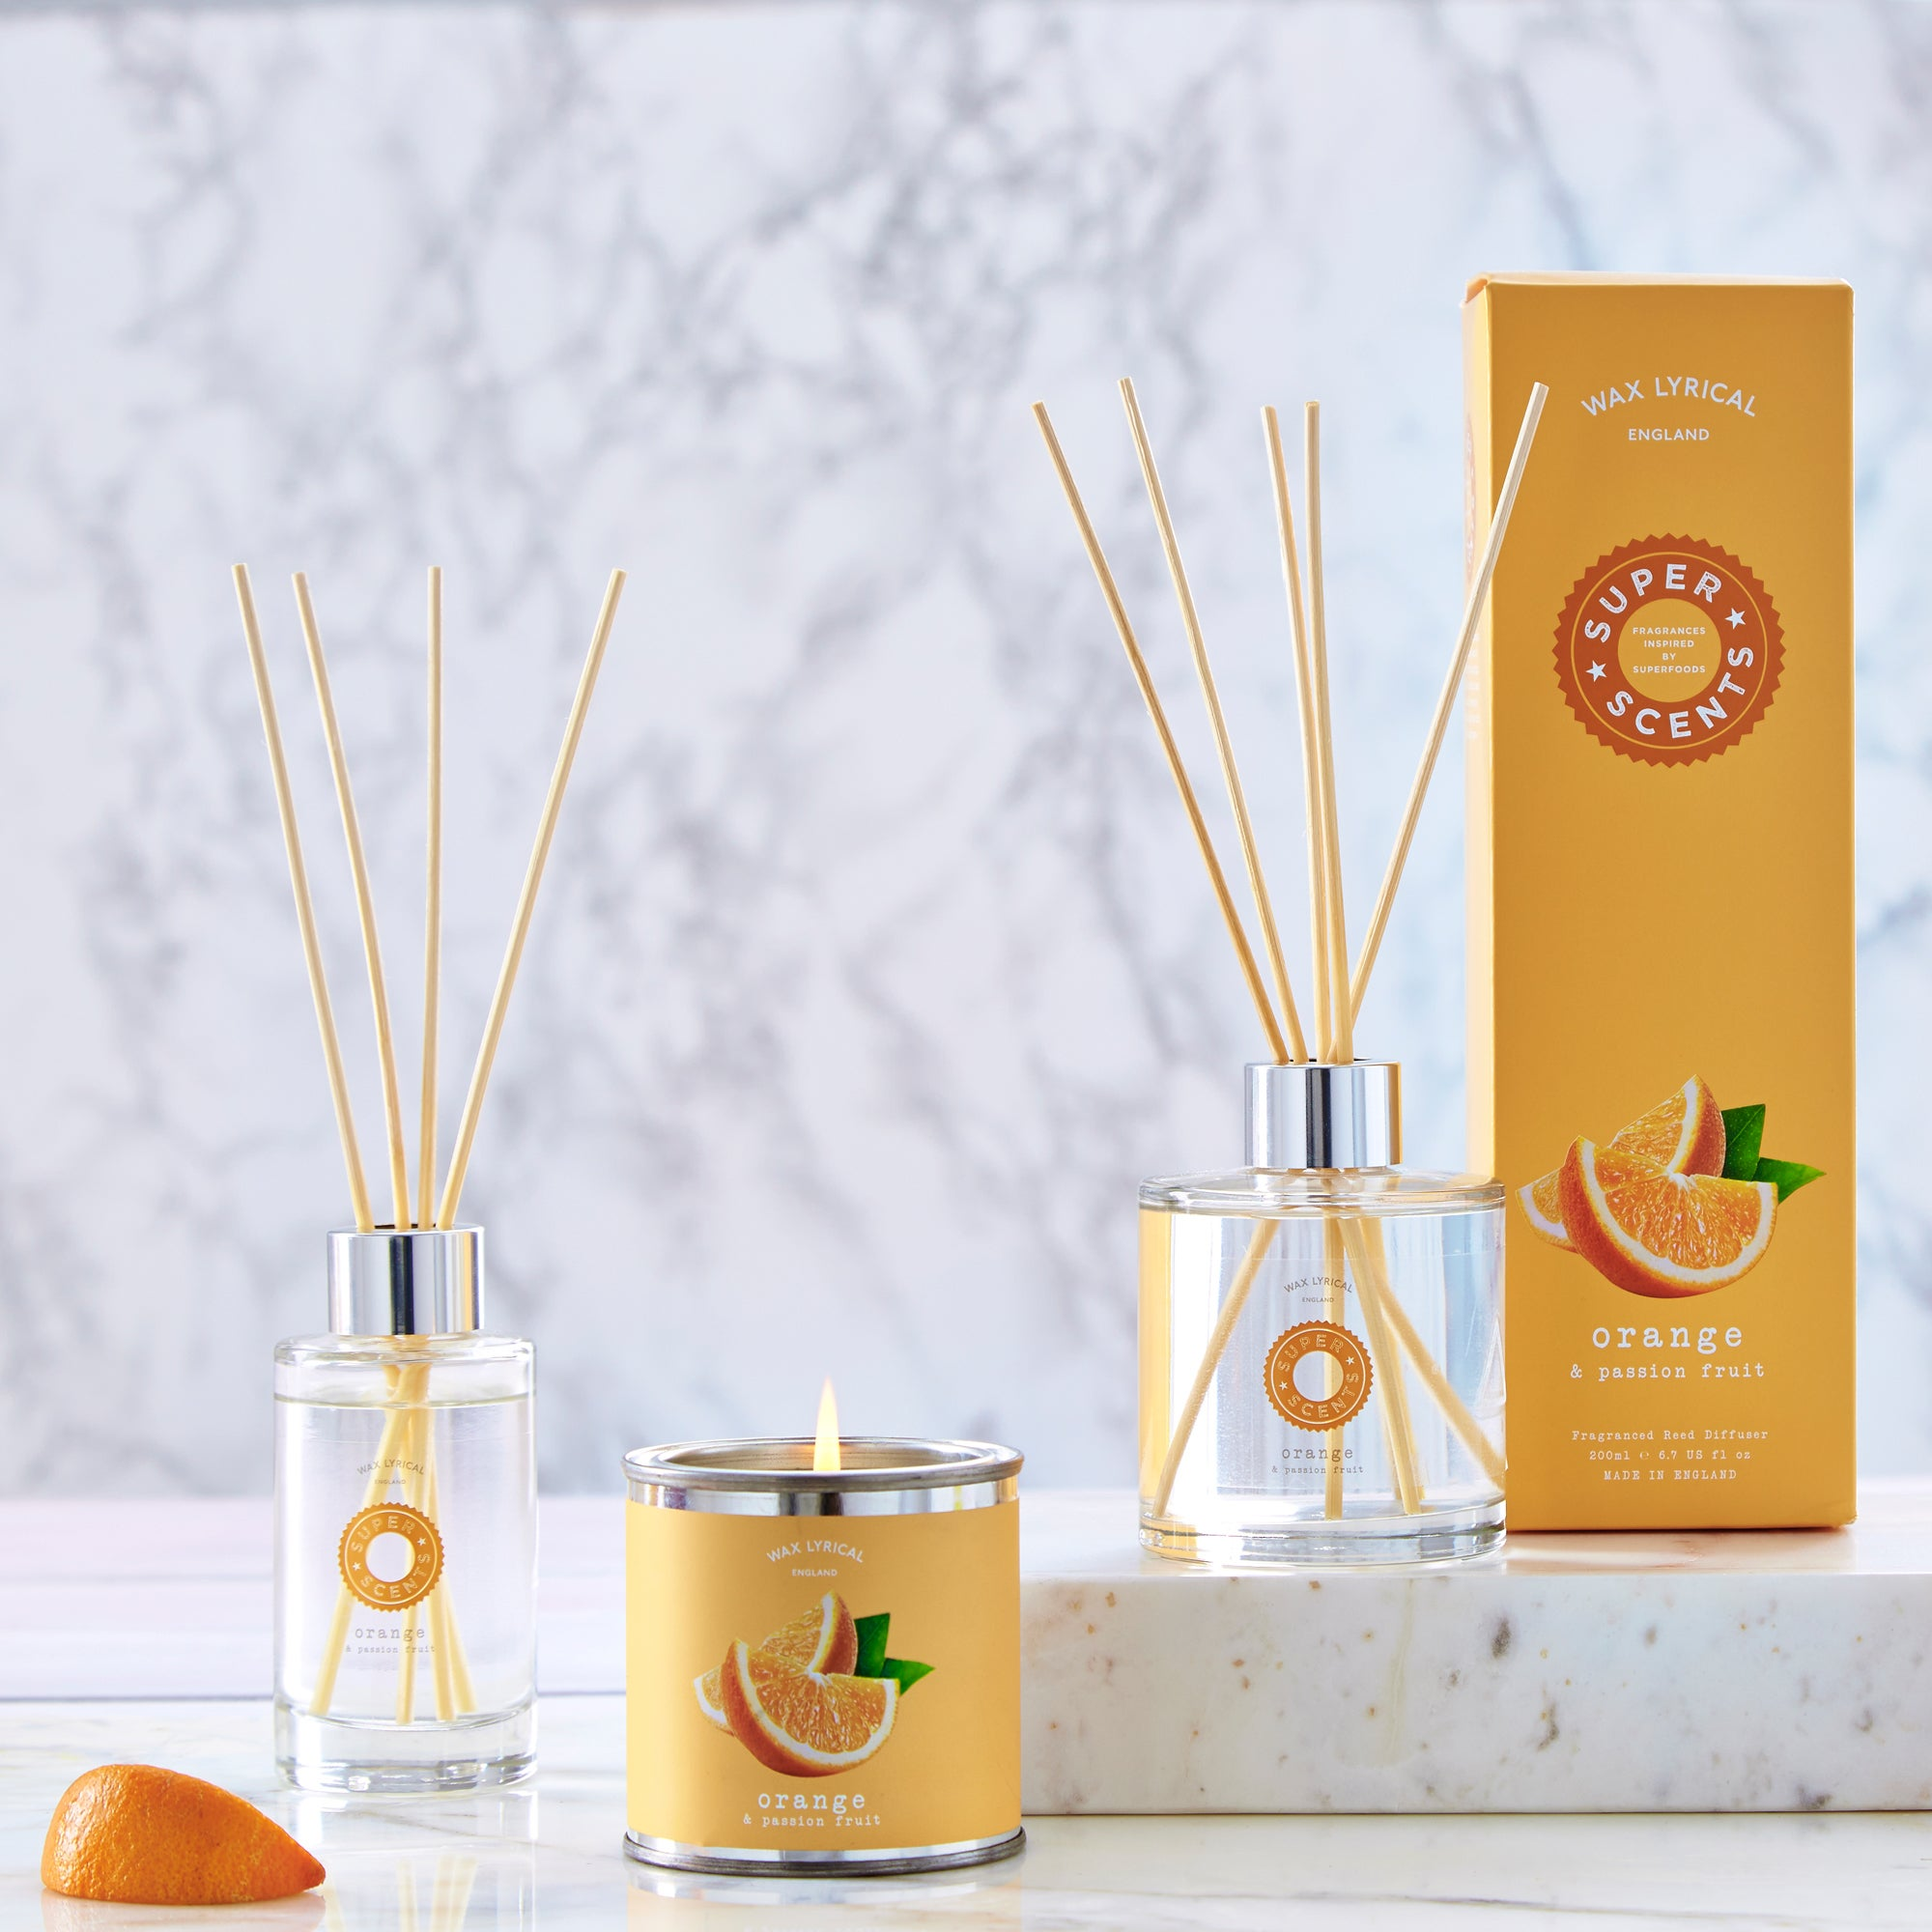 Wax Lyrical Superscents Orange and Passionfruit Fragrance Collection